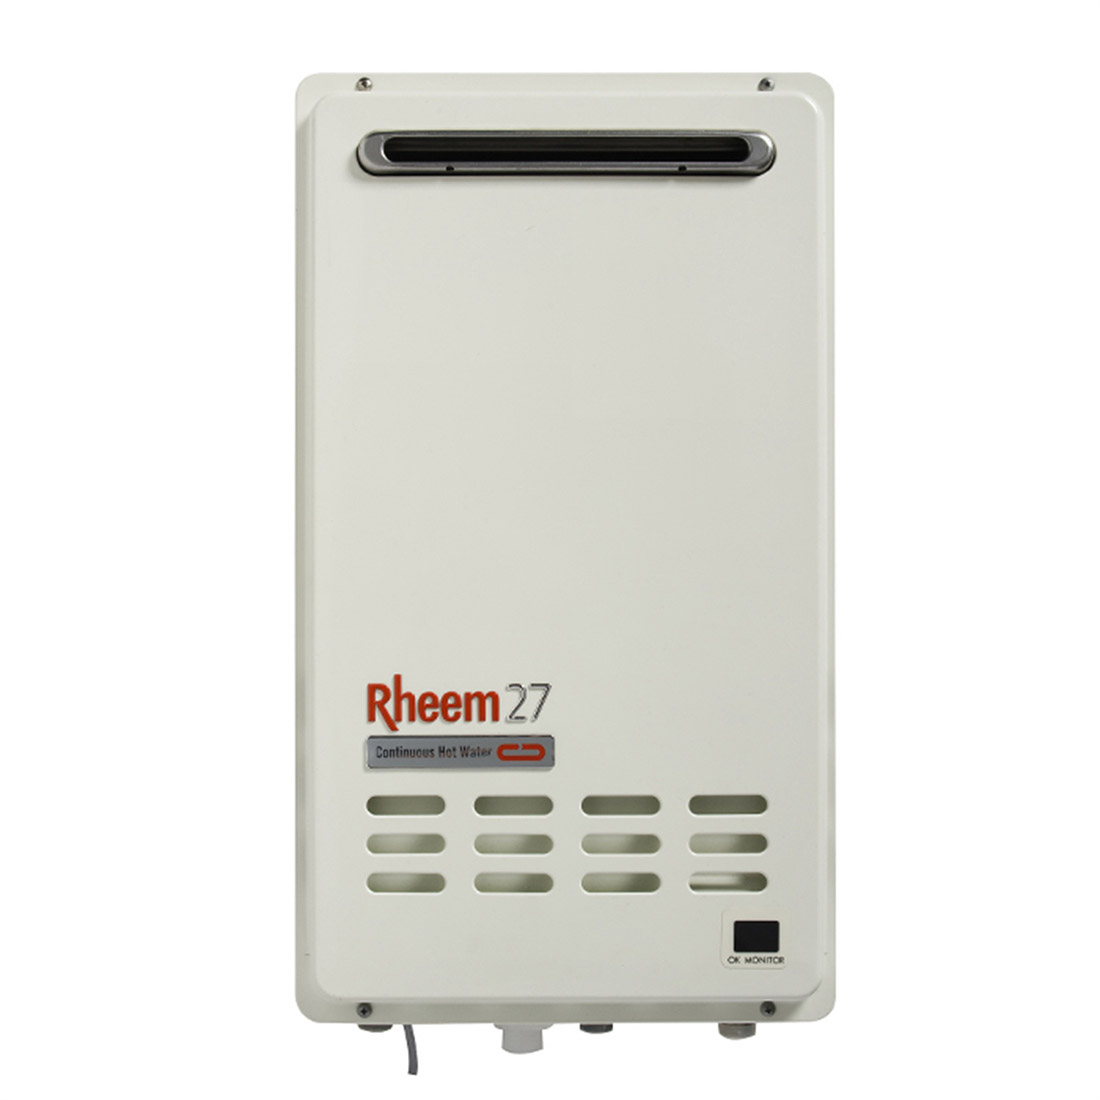 Rheem 874 Series Integrity Continuous Flow Natural Gas Water Heater 27L Outdoor 6 Star 874627NFZ